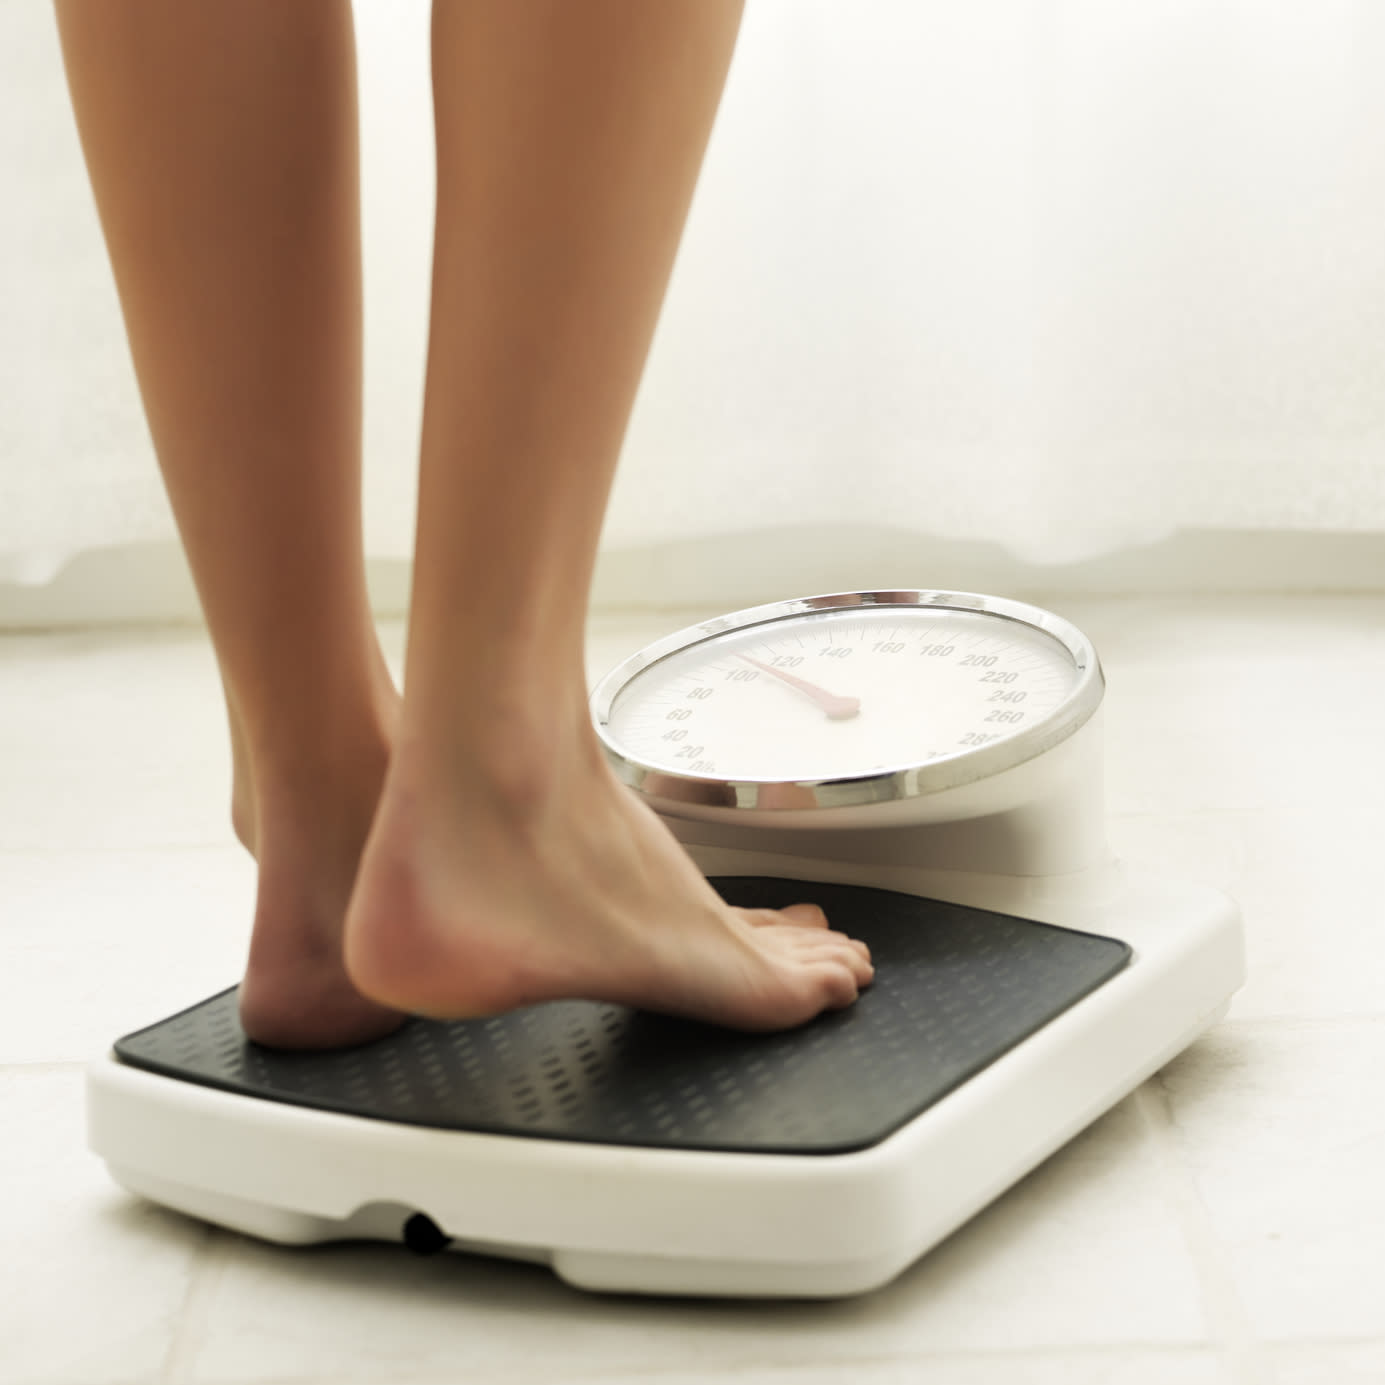 CORRECTED: How much weight you lose is more important than the speed